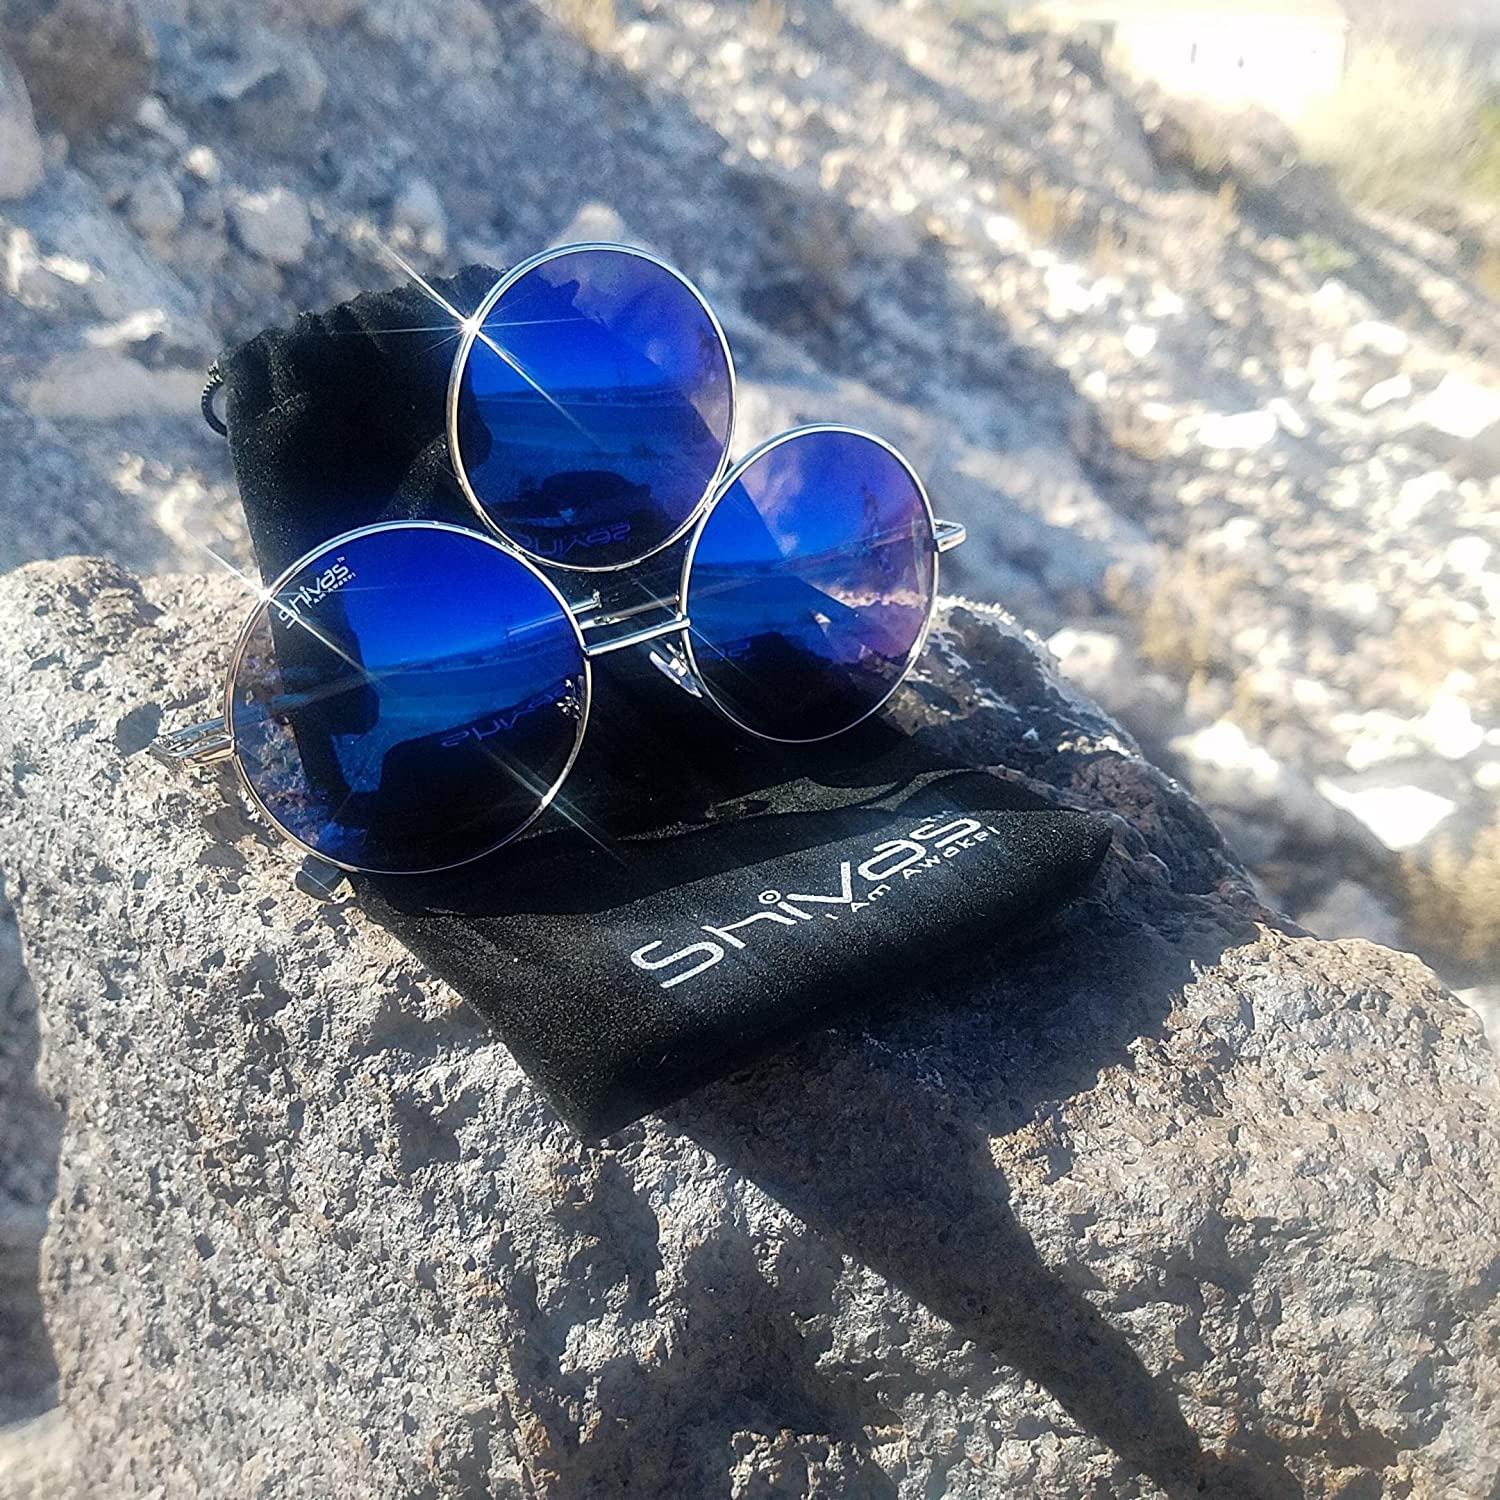 31a4d19ae592 Amazon.com: Third Eye Sunglasses by Shivas Includes Free Case. Prince  Tribute And EDC Style: Shoes